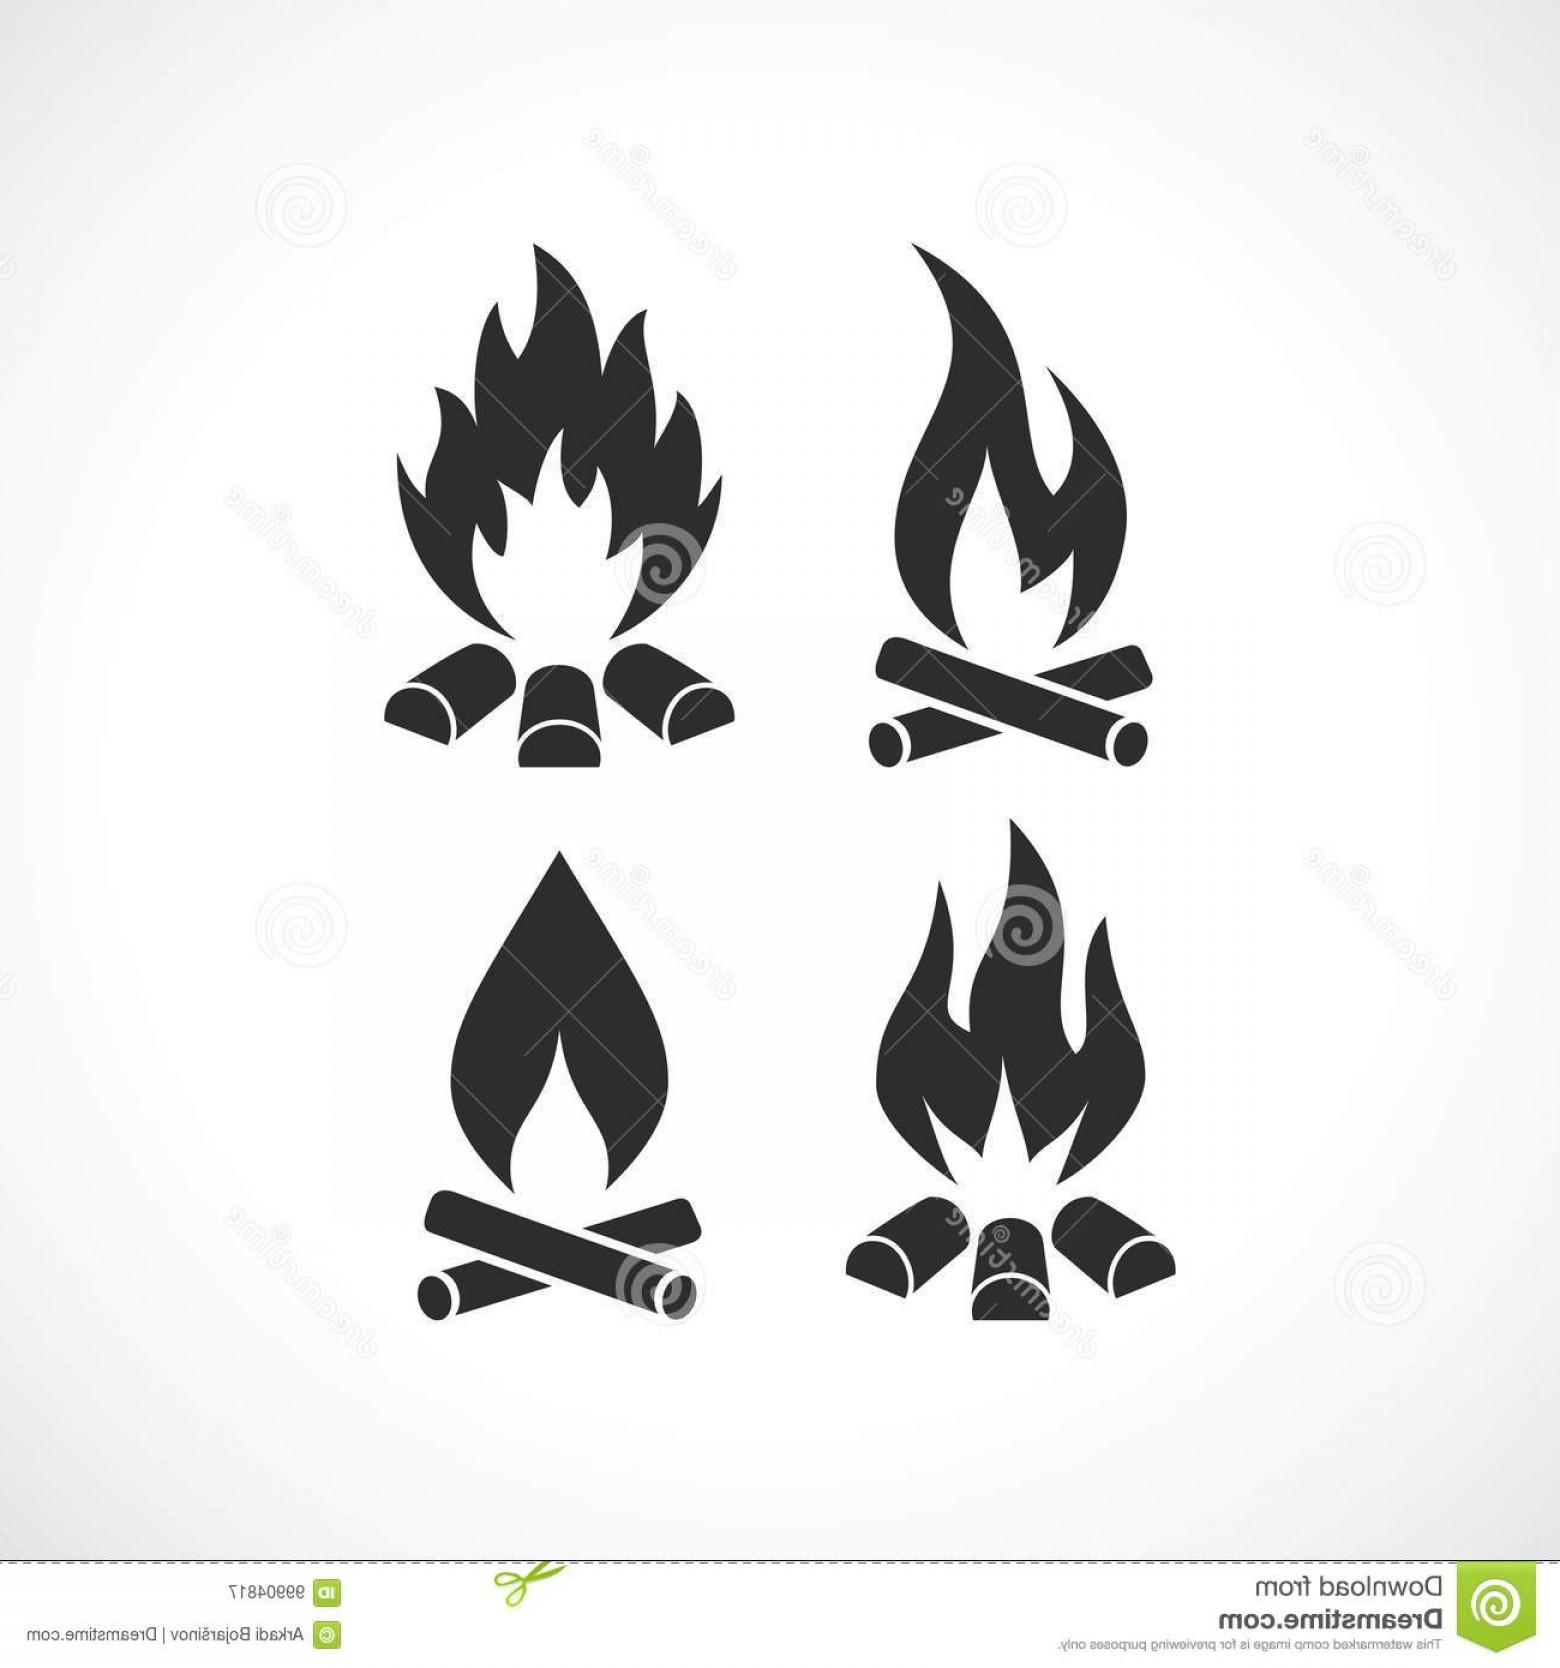 Flame Vector Icon: Blazing Fires Flames Vector Icons Set Blazing Fire Flame Vector Icon Image